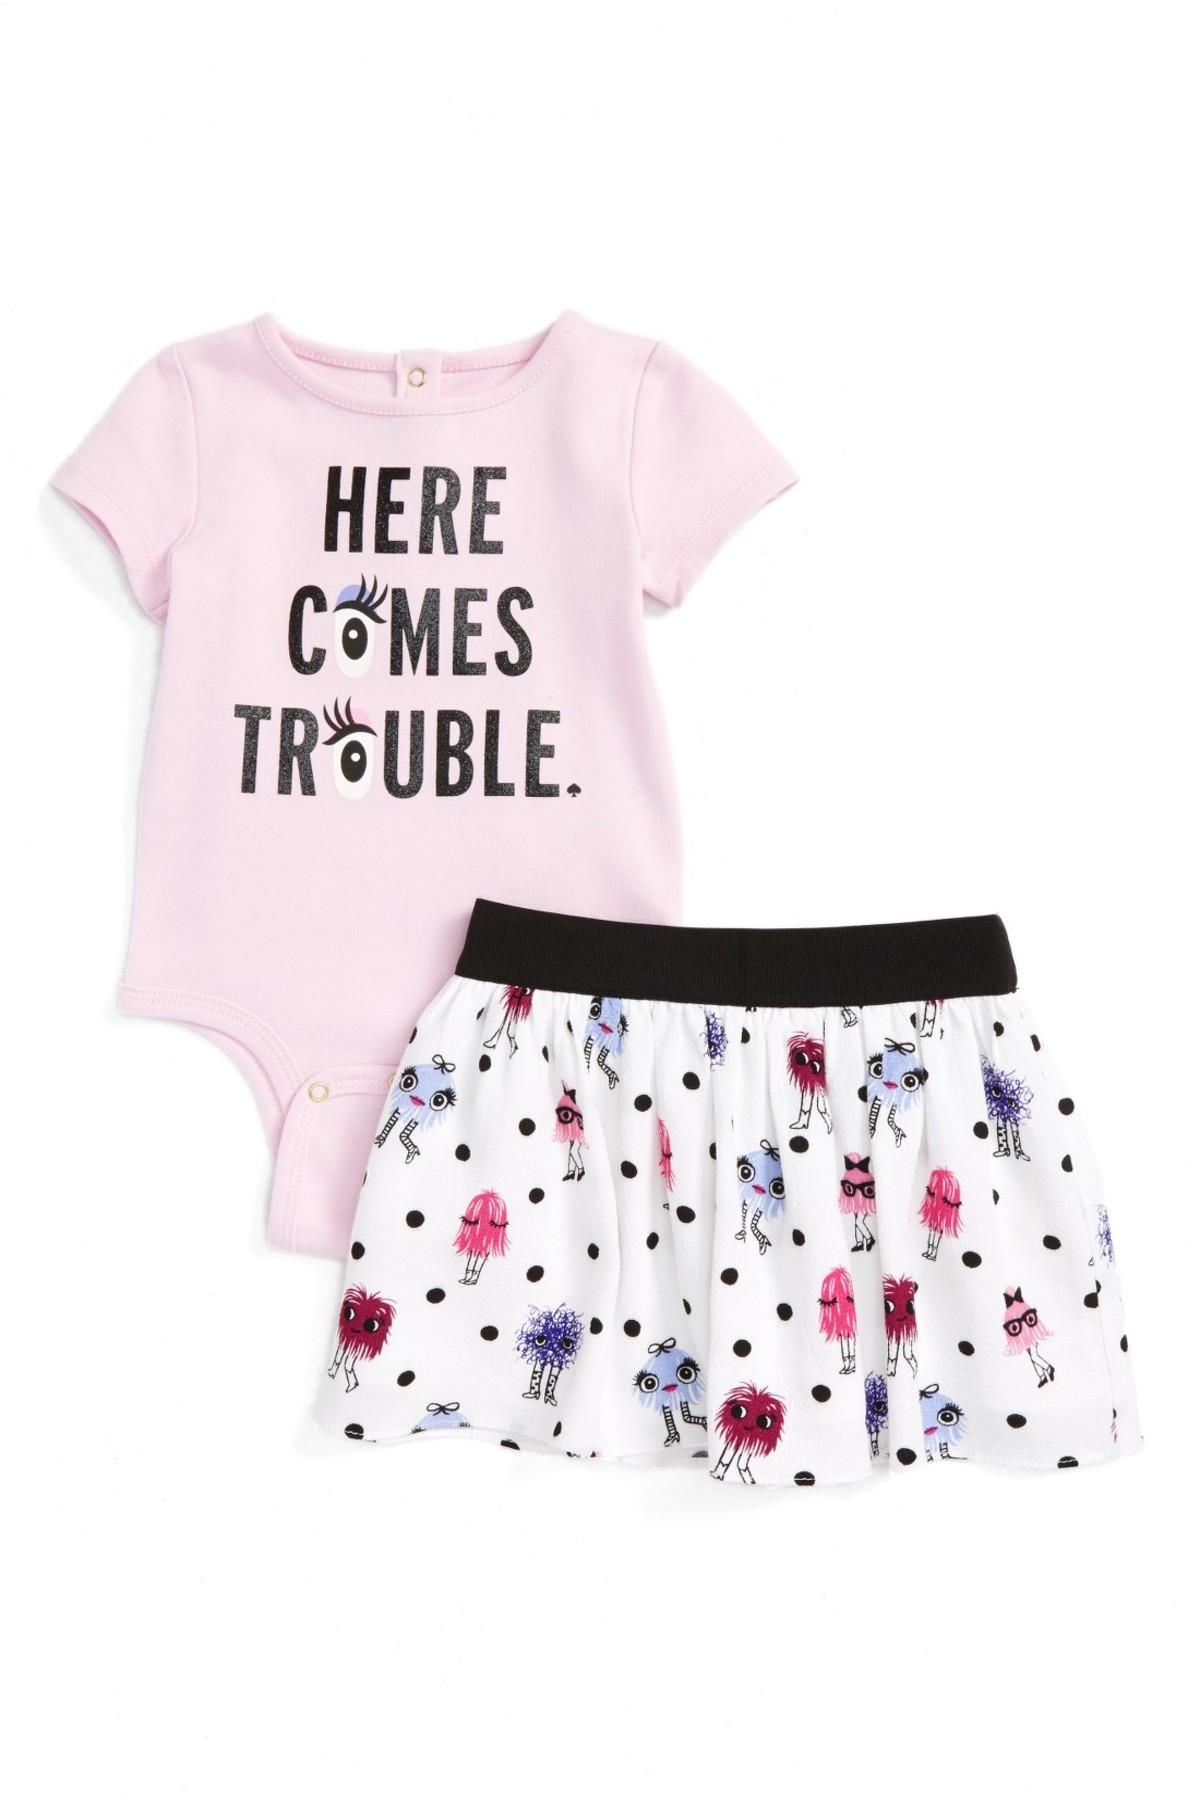 a5083a960660 Lyst - Kate Spade Here Comes Trouble Bodysuit & Skirt Set (baby Girls)